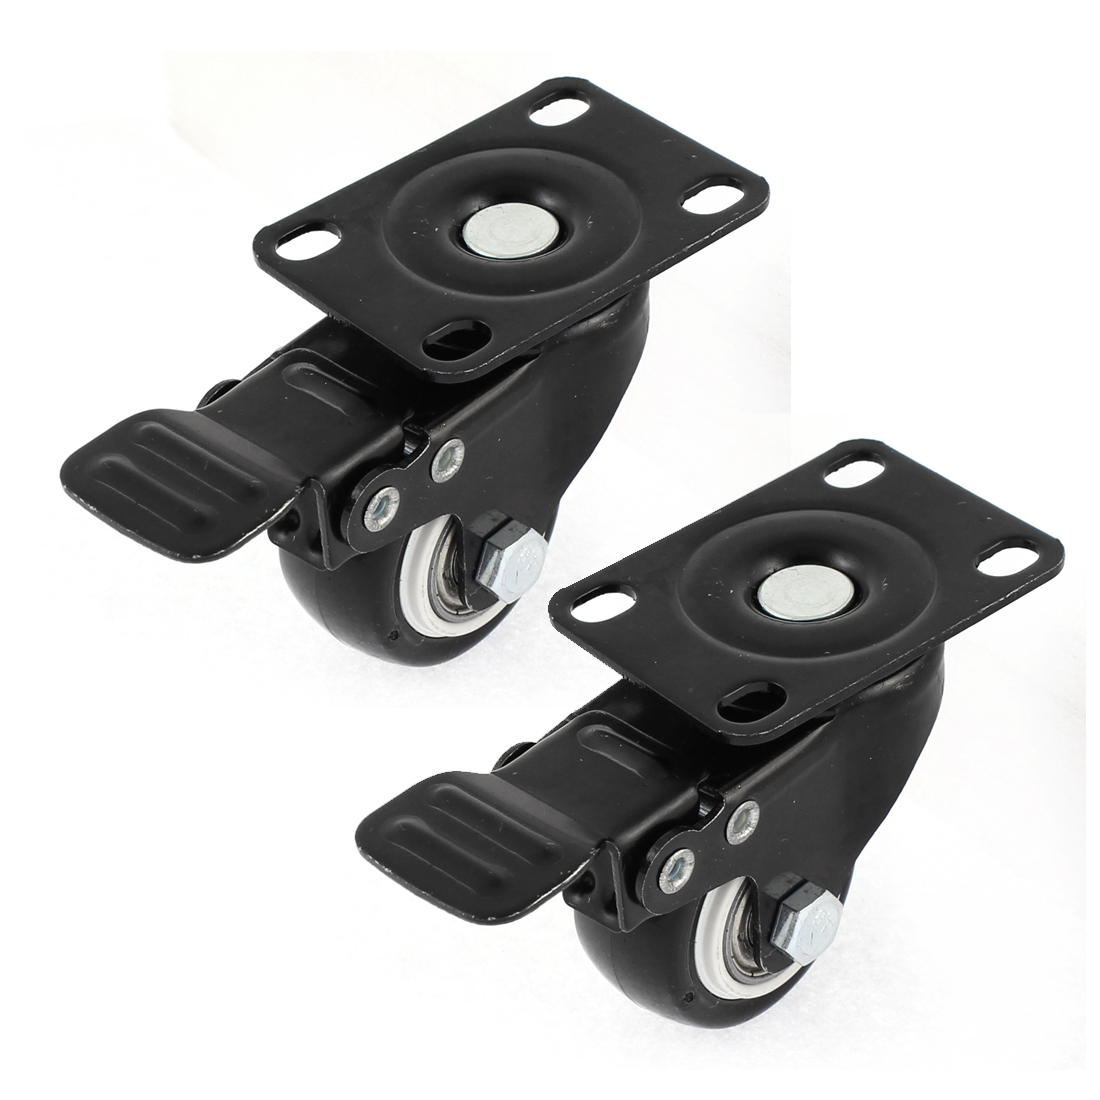 "2pcs 1.5"" Dia Wheels Top Plate Lock Brake Roller Swivel Casters Black"